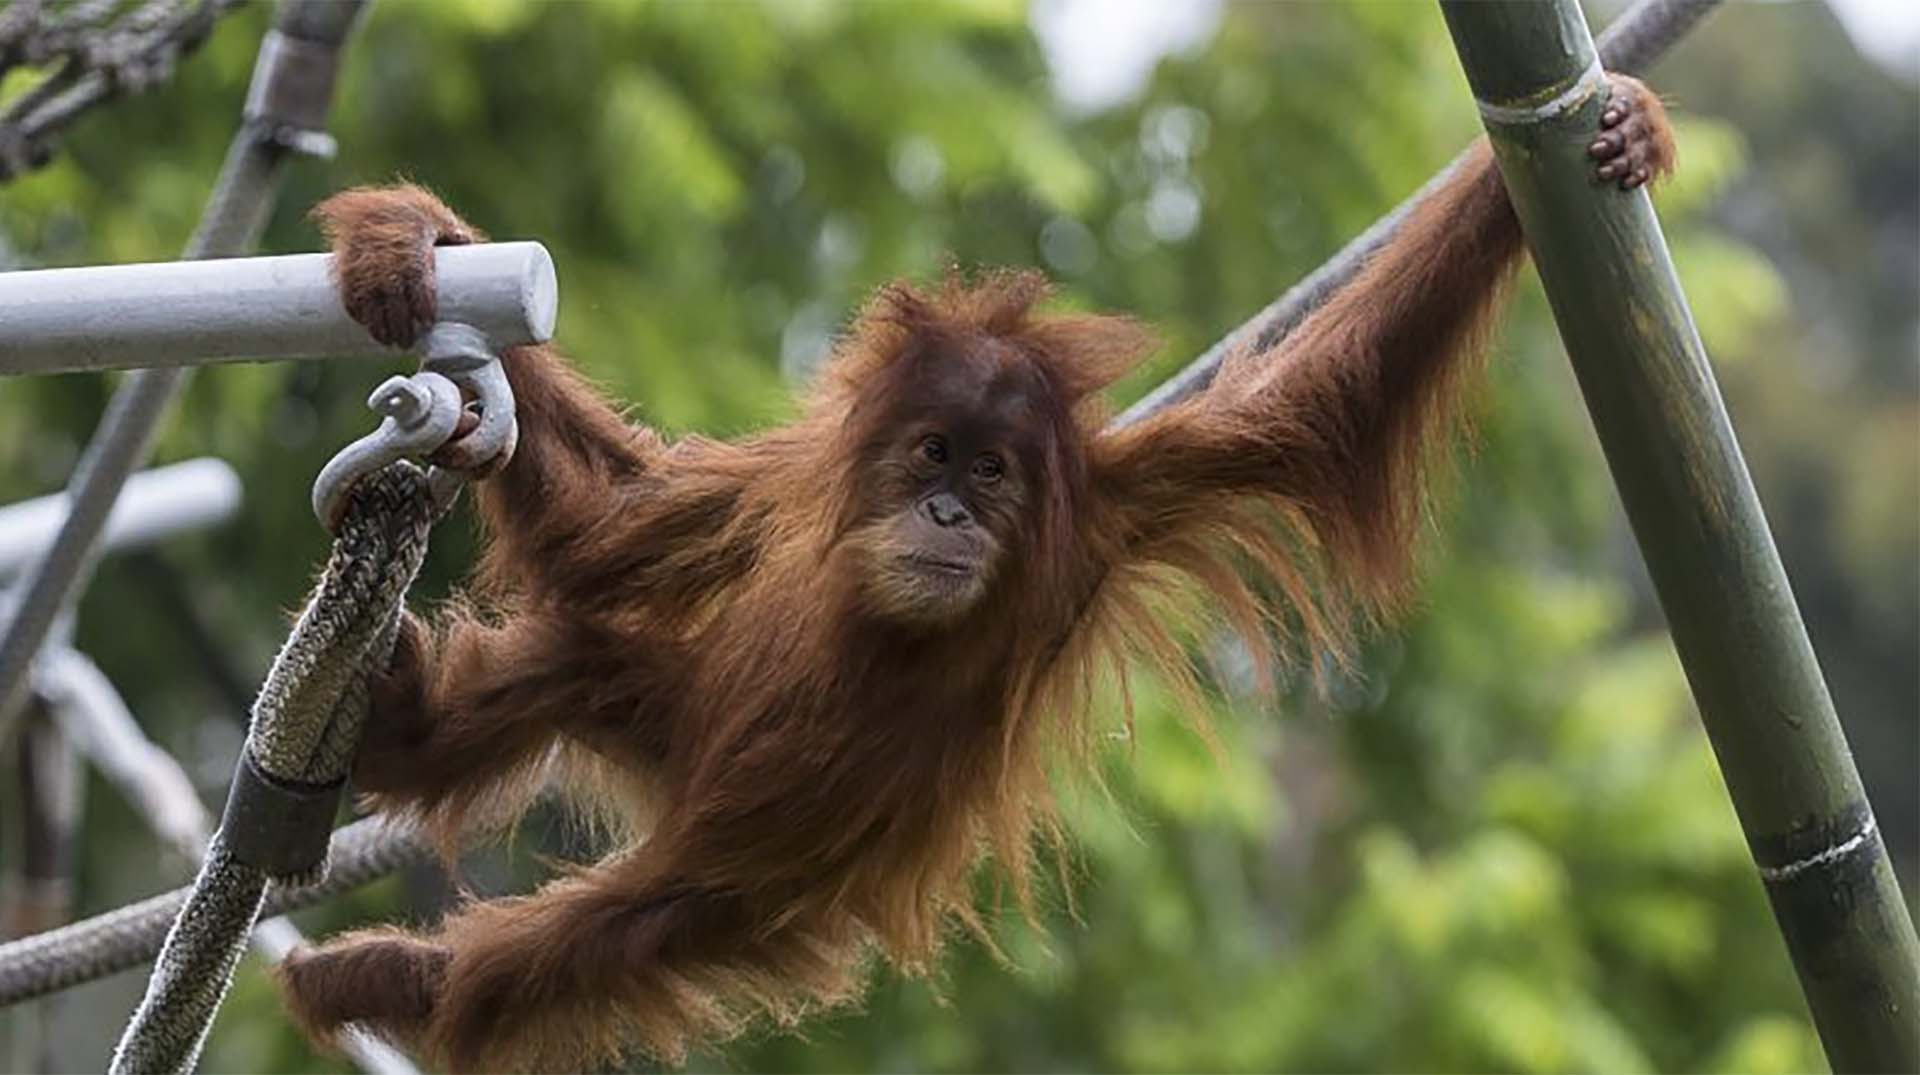 Aisha the orangutan enjoys climbing